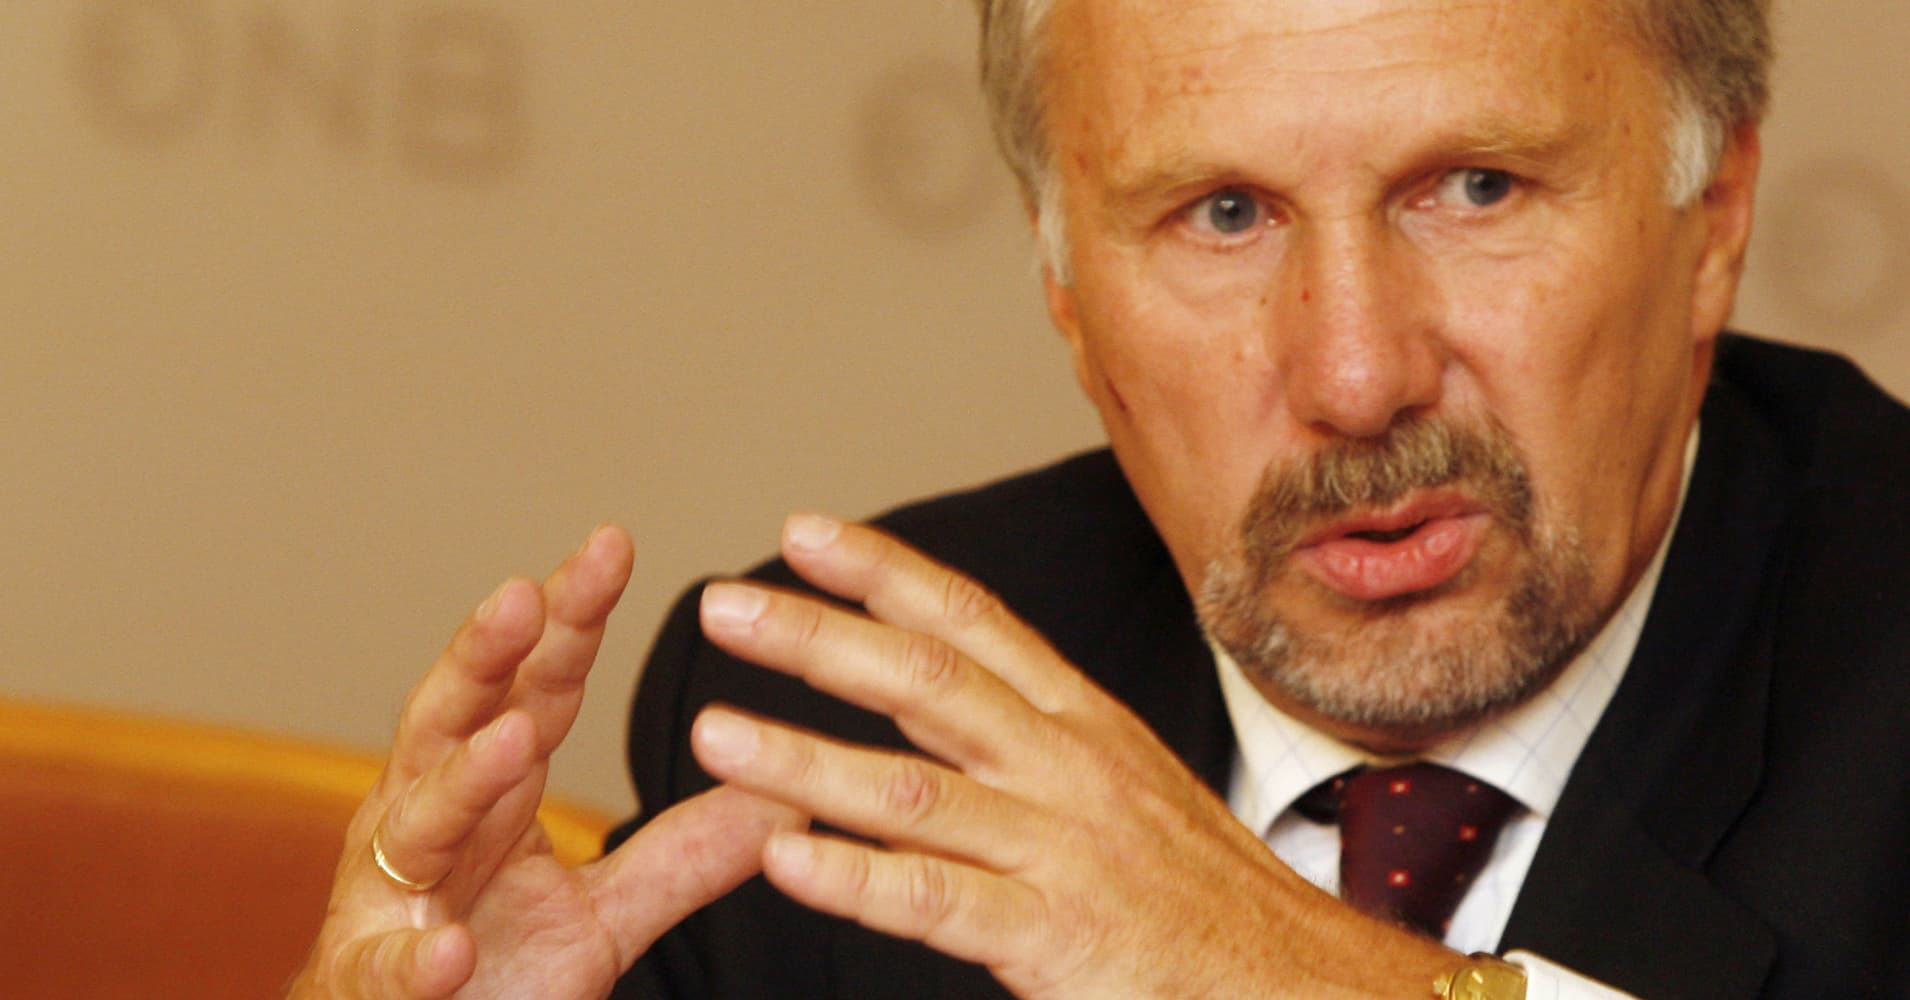 ECB's Nowotny says policy on rates, bond purchases set for 2017, still mulling 2018